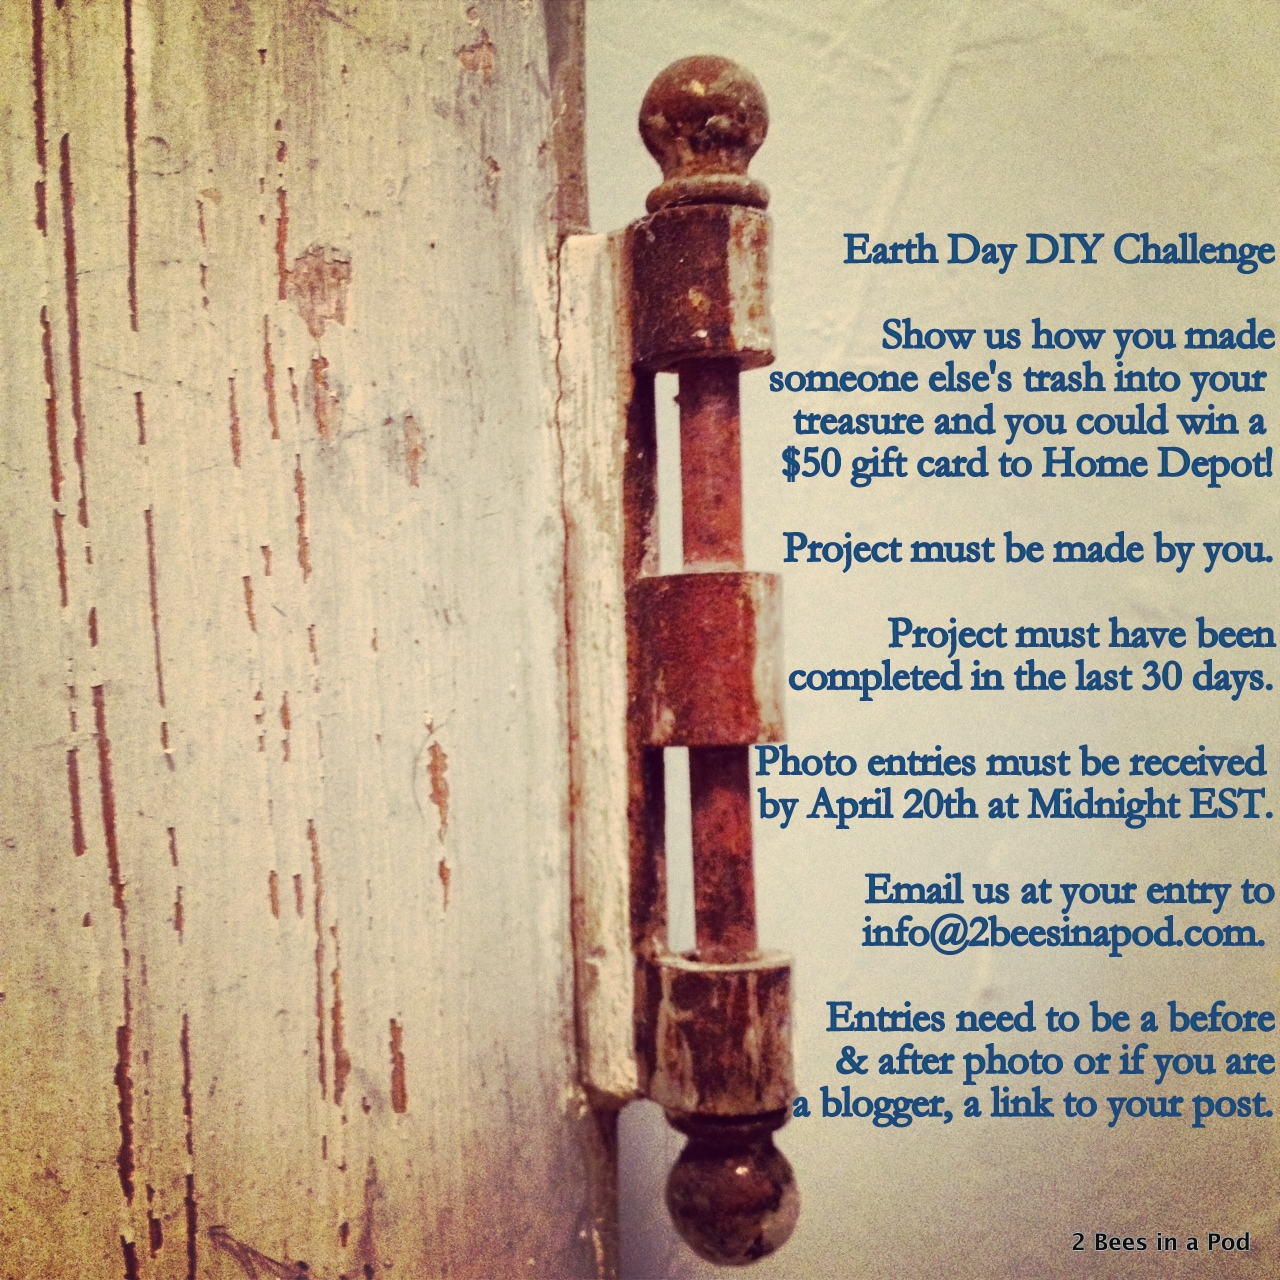 Earth Day DIY Challenge